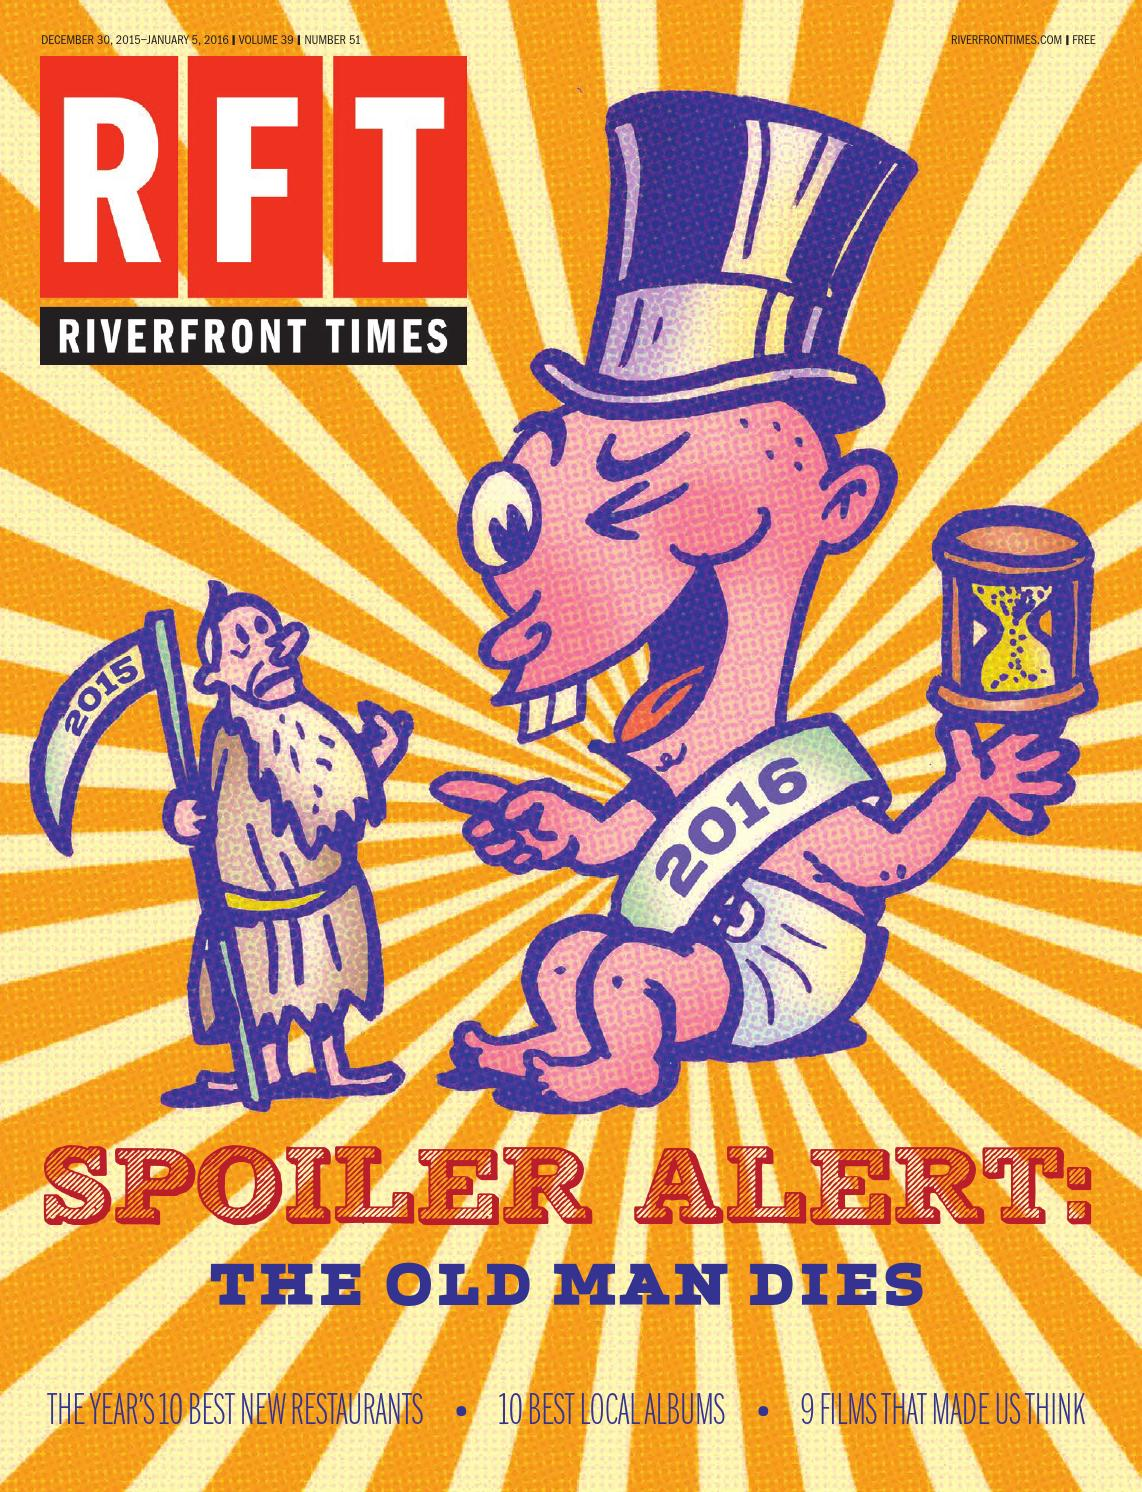 7d1f9f26 Riverfront Times - December 30, 2015 by Euclid Media Group - issuu